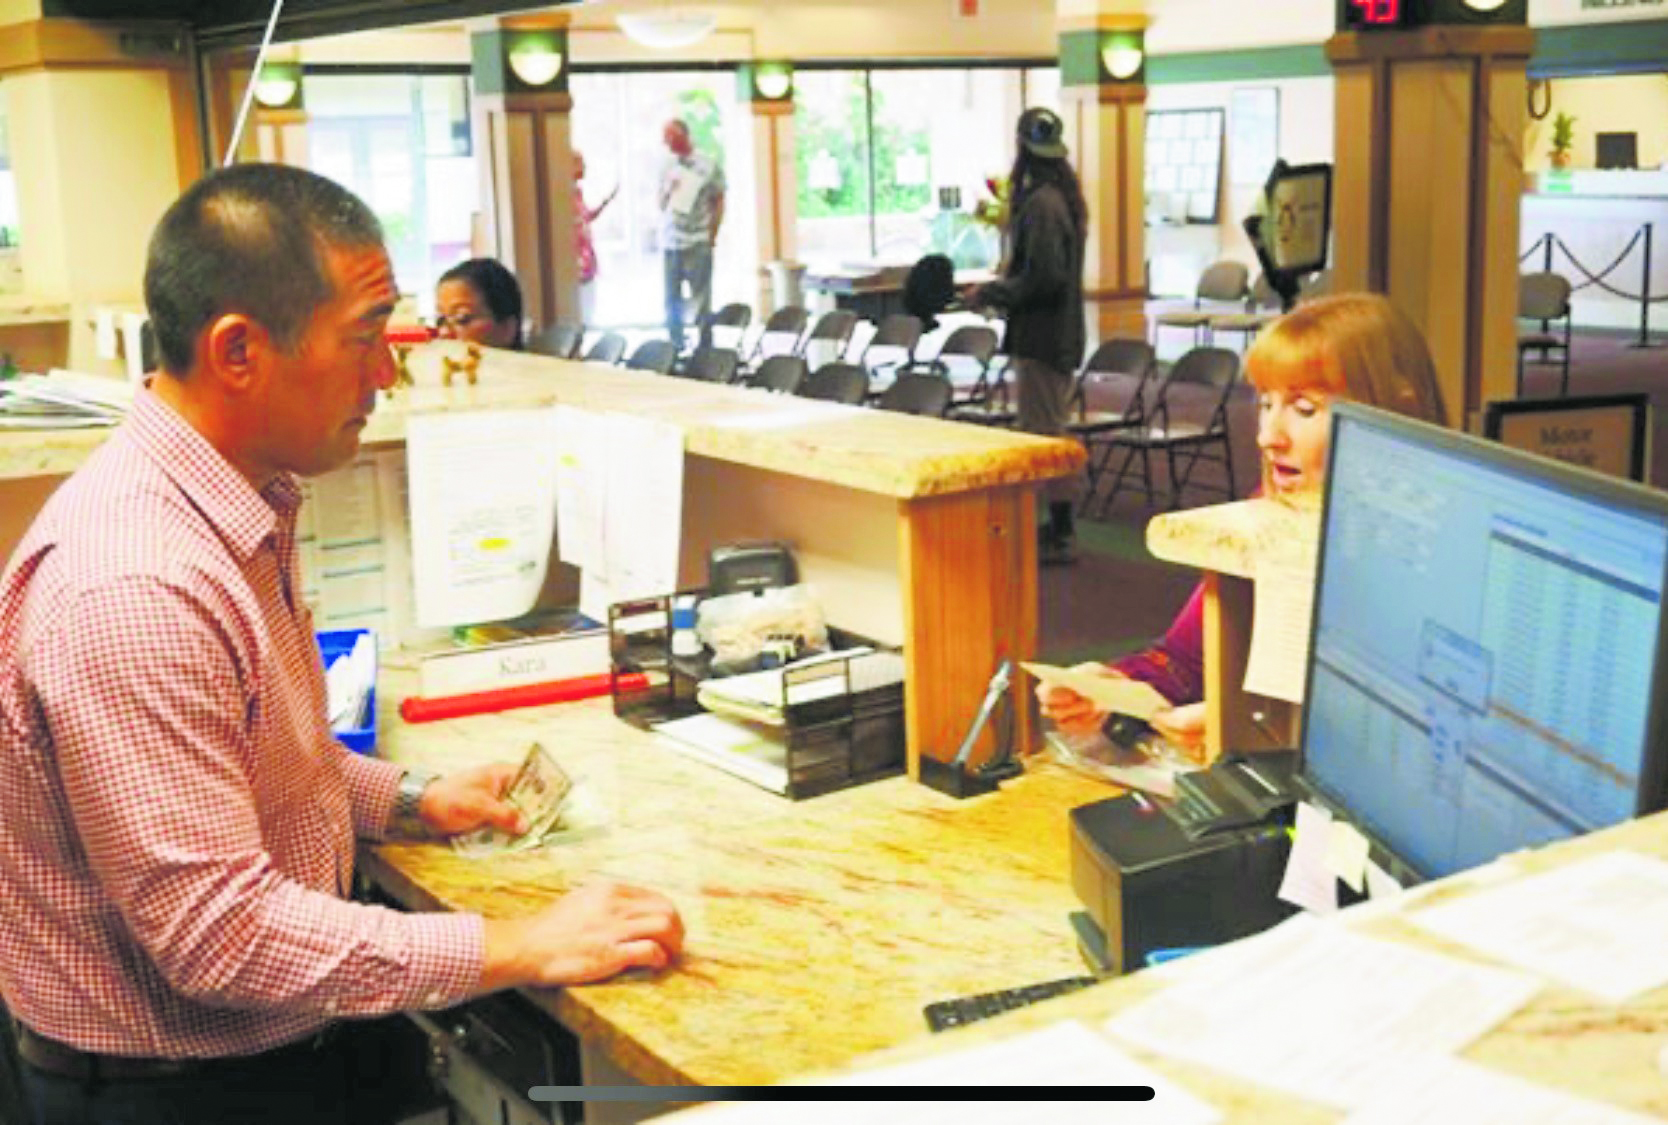 The hands-on mayor assists a Kaua'i resident at the Motor Vehicle Registration Office.